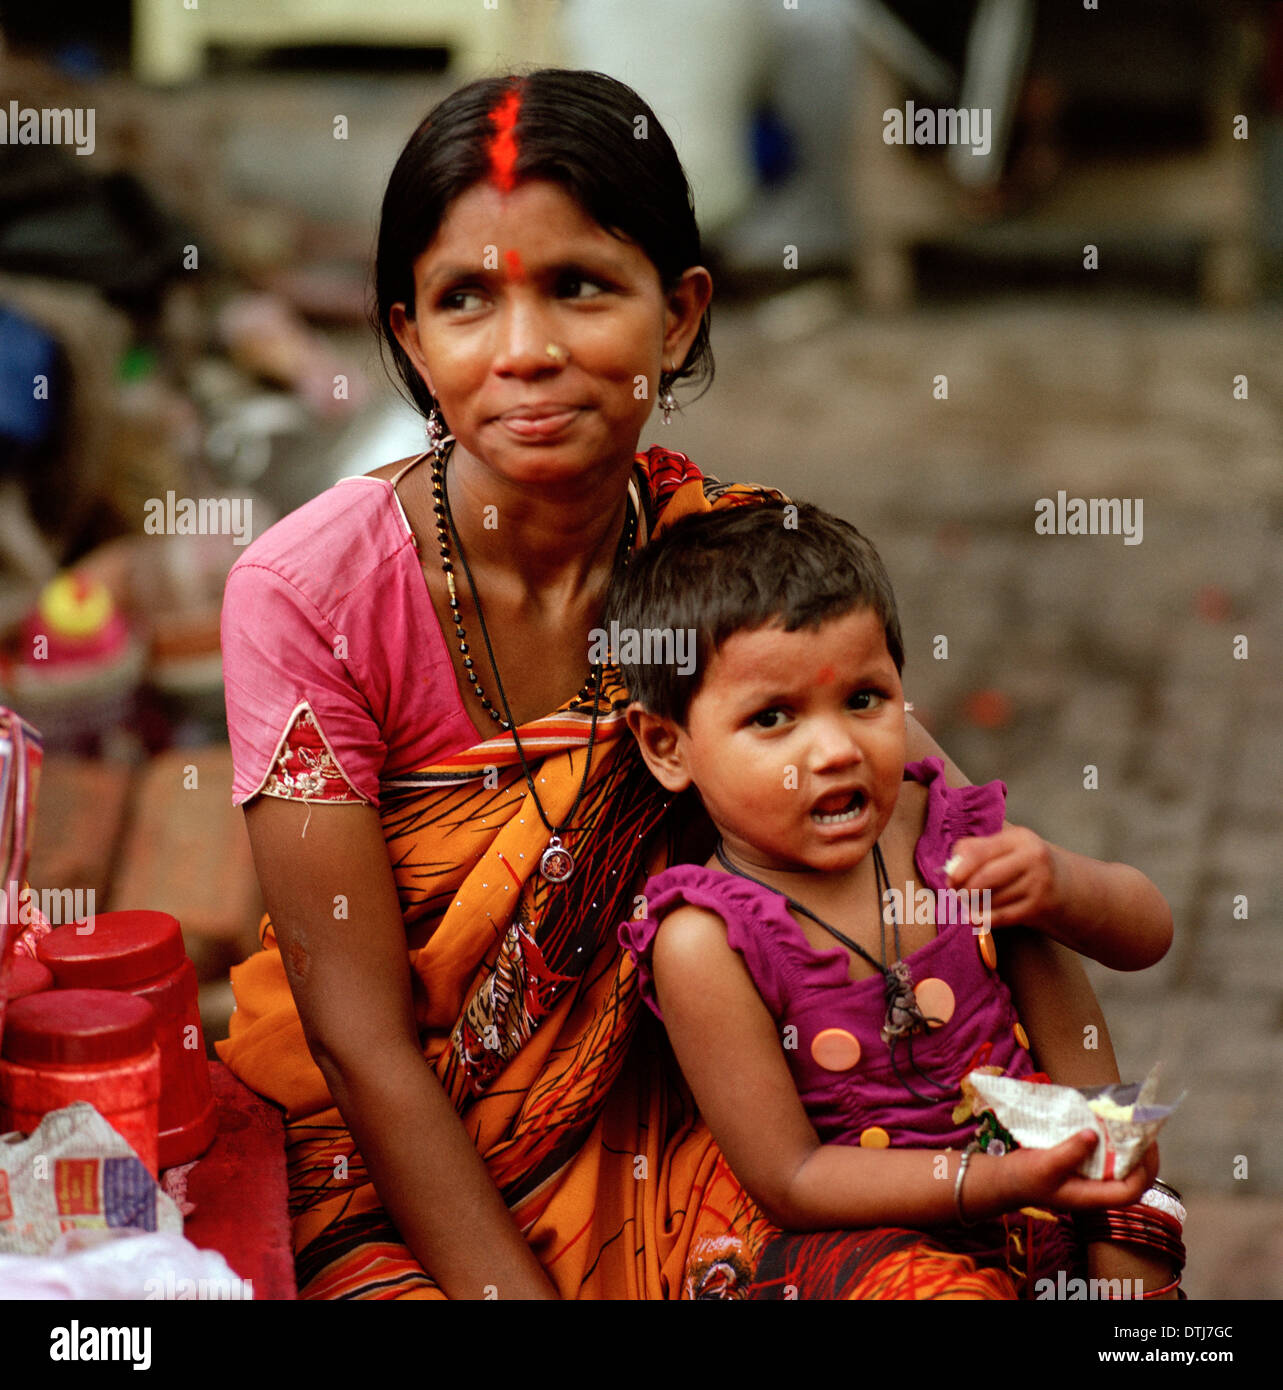 Tikka seller and daughter at Kalighat Hindu Temple in Kolkata Calcutta in West Bengal in India in South Asia. Real Stock Photo